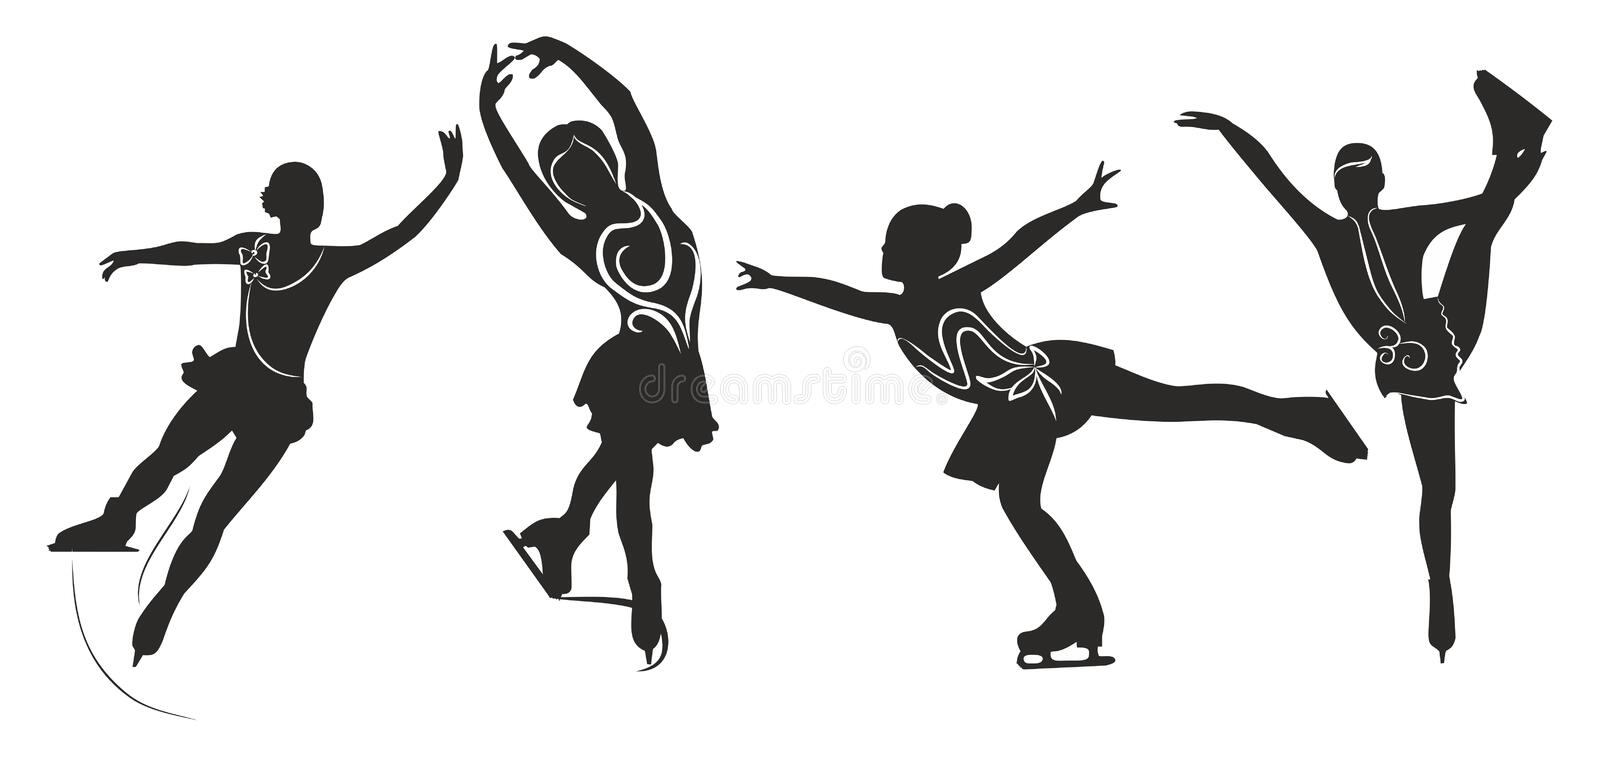 Dynamic Sports Figures Silhouette: Figure Skating Stock Vector. Illustration Of Sport, Skates